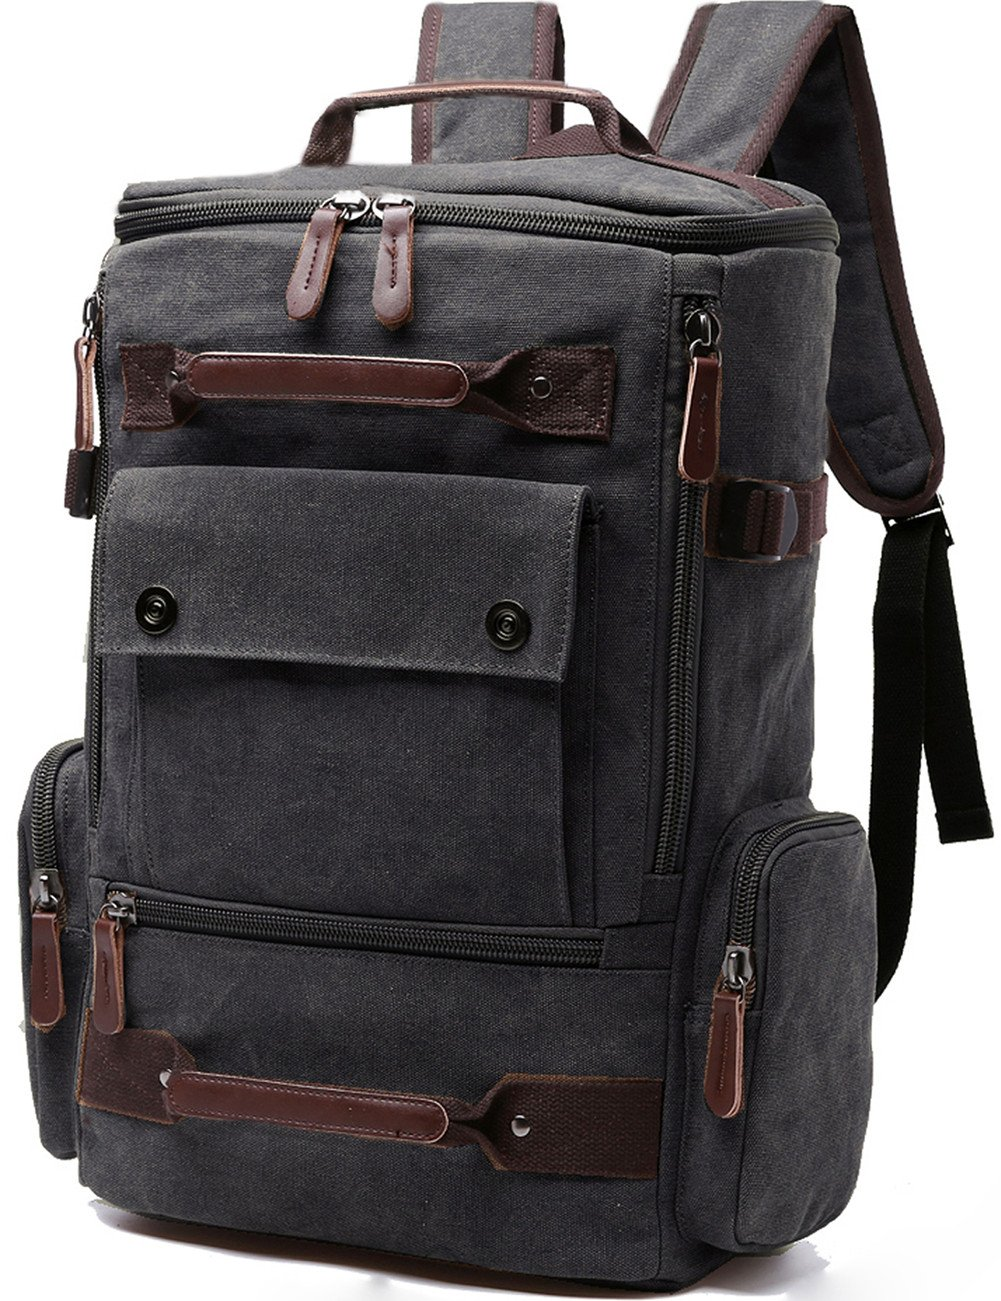 e67a50fe4ff7 Canvas Backpack, Aidonger Vintage Canvas School Backpack Hiking Travel  Rucksack Fits 15'' Laptop (Army Green)